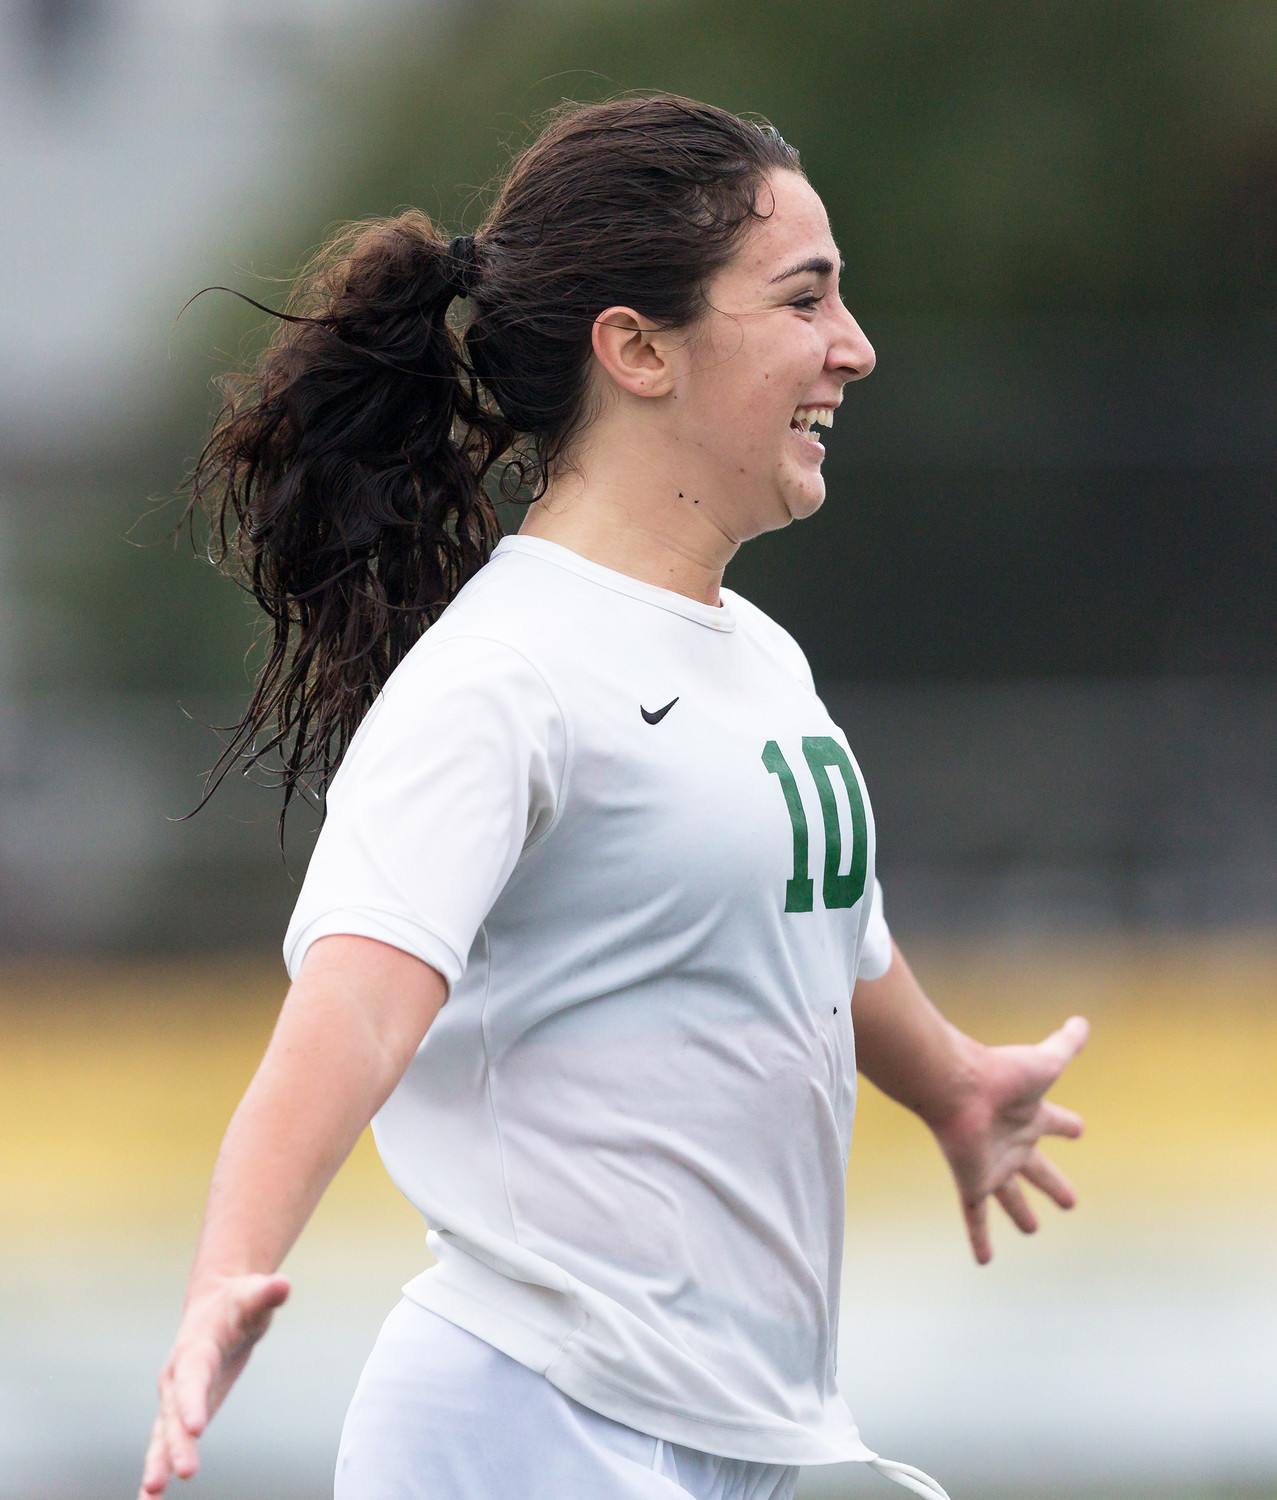 Senior Gina Giovinco scored twice during the 20-minute mandatory overtime to help Lynbrook beat Valley Stream North, 3-1, in a Nassau Class A first-round playoff game Oct. 24.